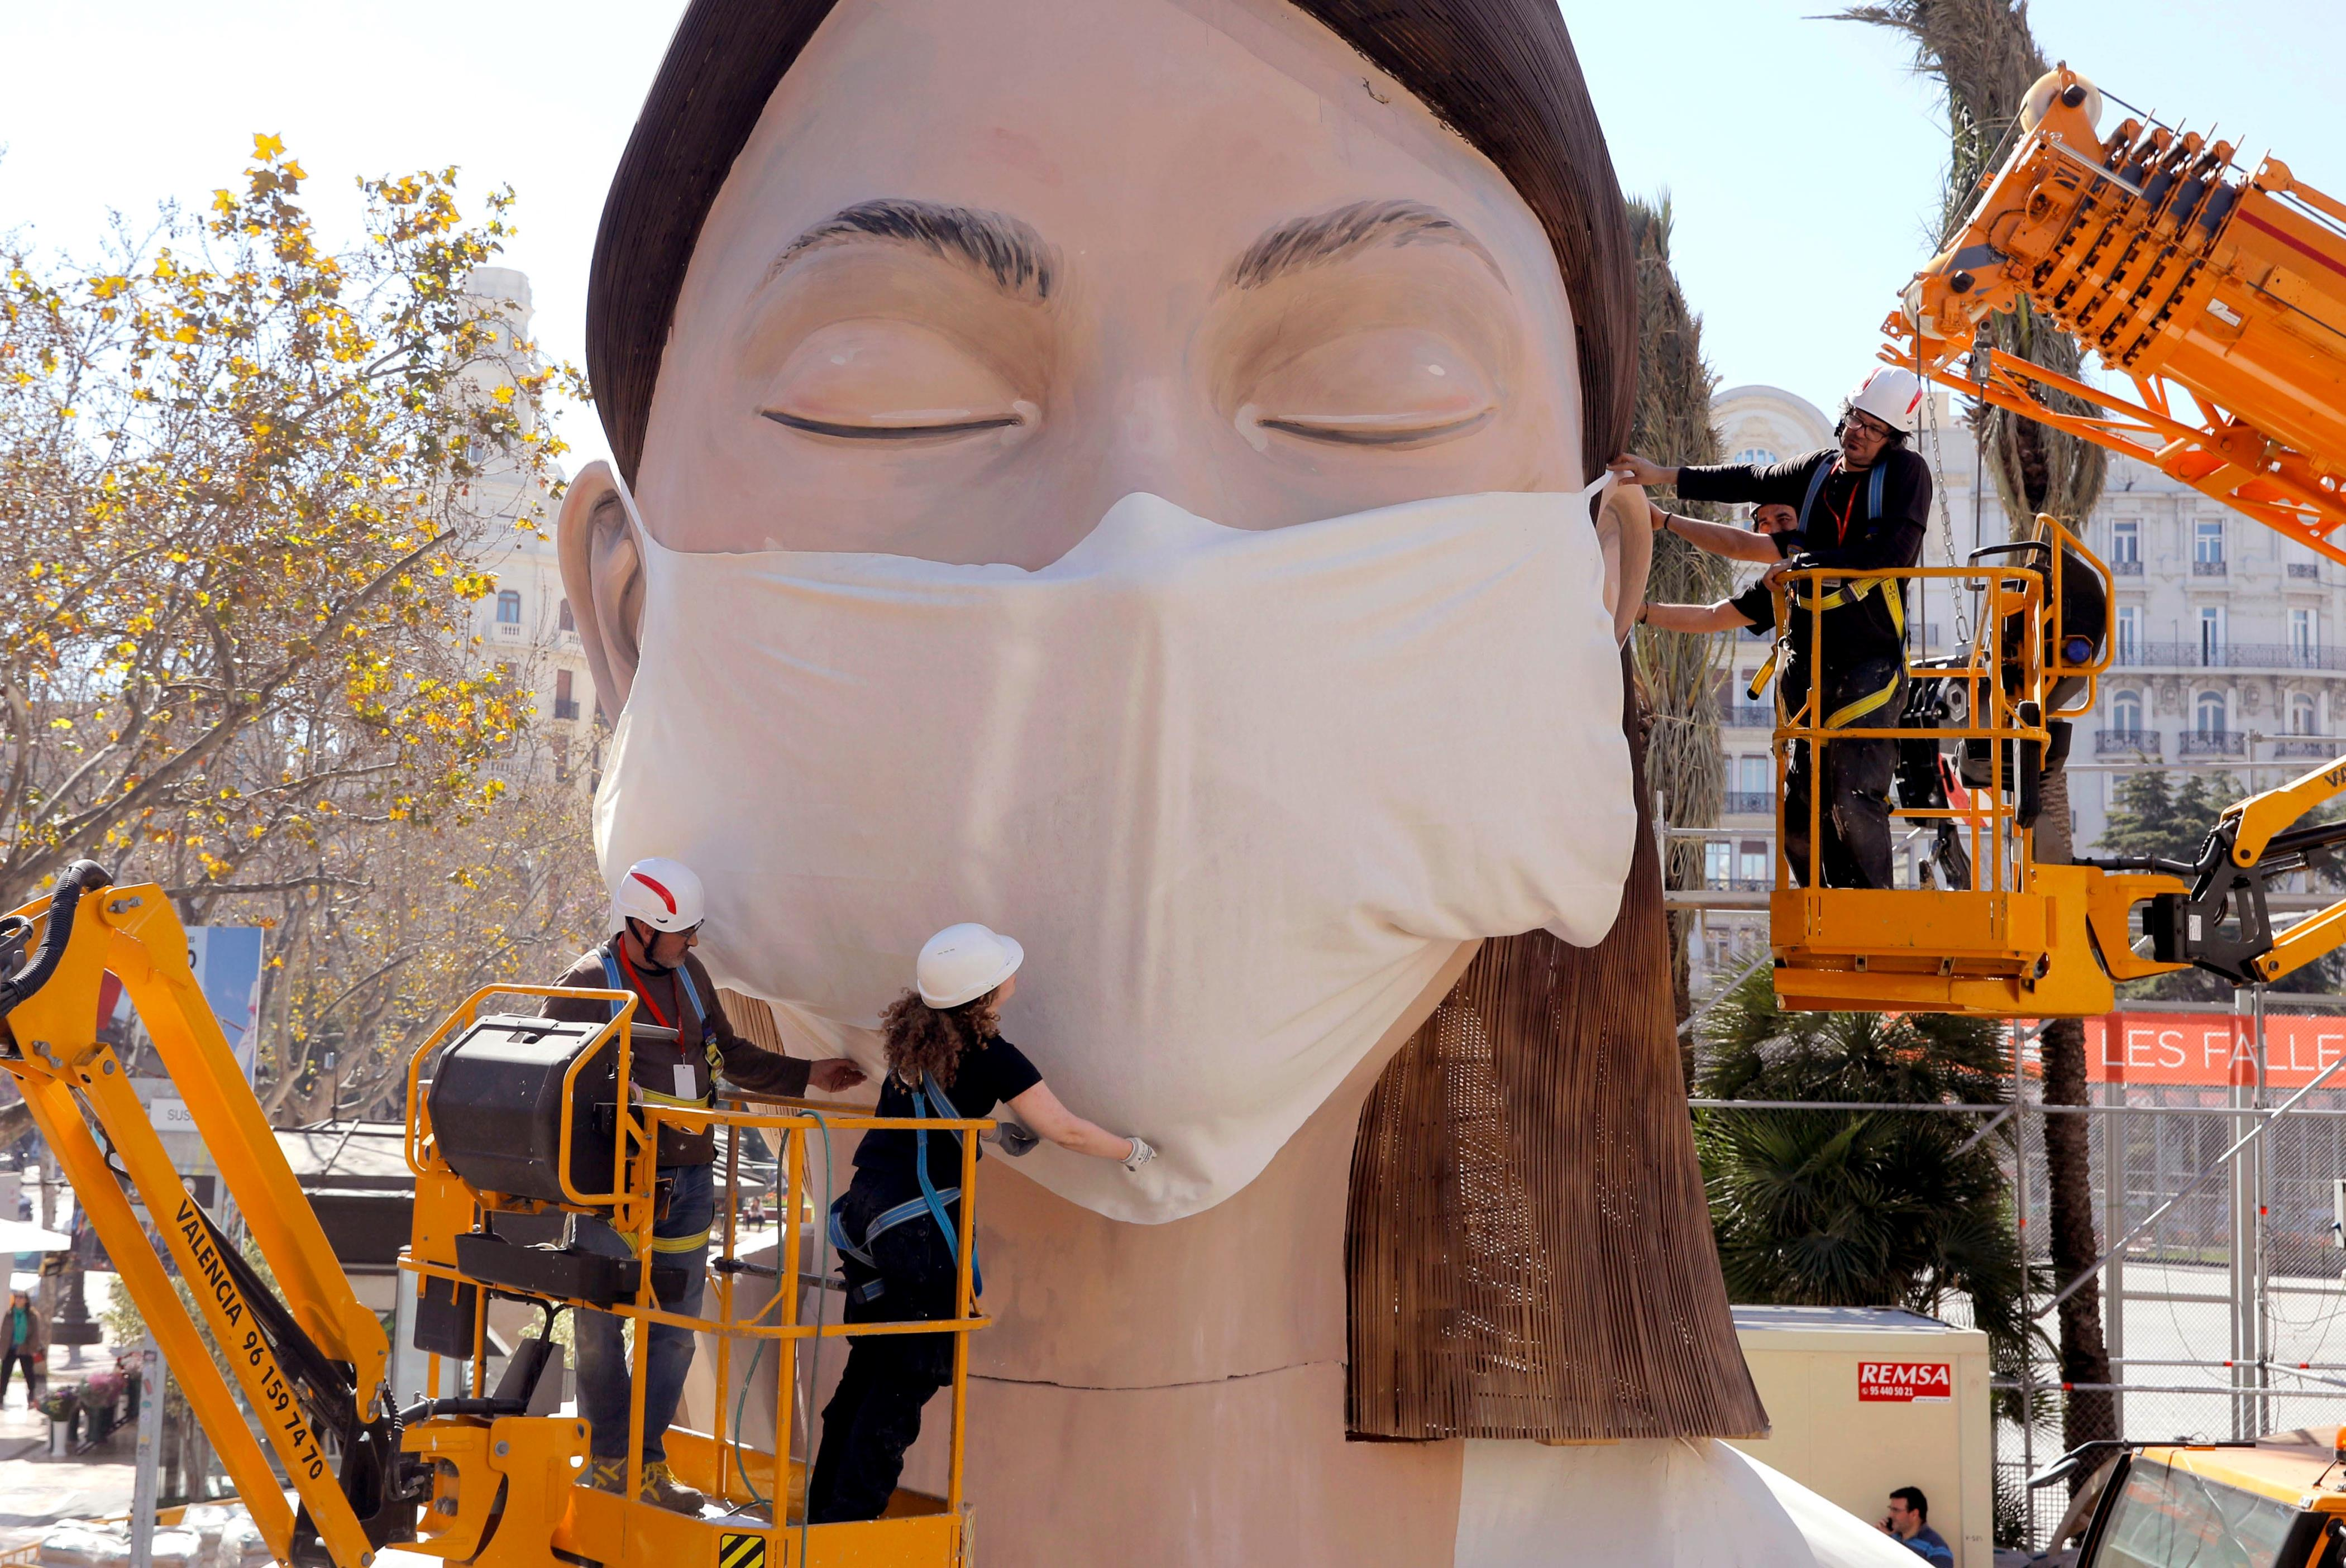 Slide 81 of 113: Workers place a mask on the figure of the Fallas festival in Valencia, Wednesday March 11, 2020. The Fallas festival which was due to take place on March 13 has been cancelled over the coronavirus outbreak. For most people, the new coronavirus causes only mild or moderate symptoms, such as fever and cough. For some, especially older adults and people with existing health problems, it can cause more severe illness, including pneumonia.